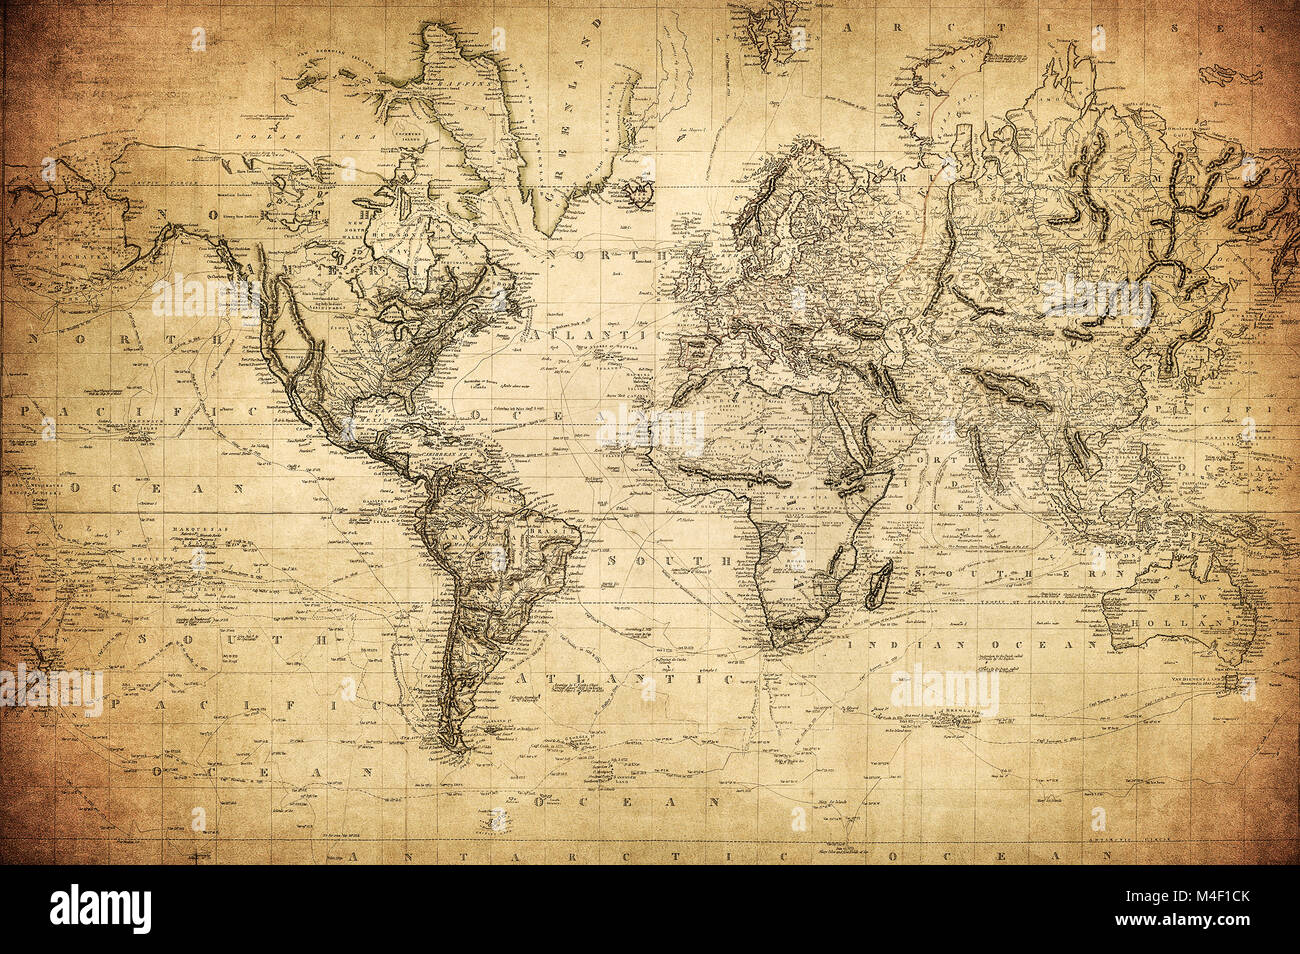 Vintage Map Of The World 1814 Stock Photo 174892723 Alamy